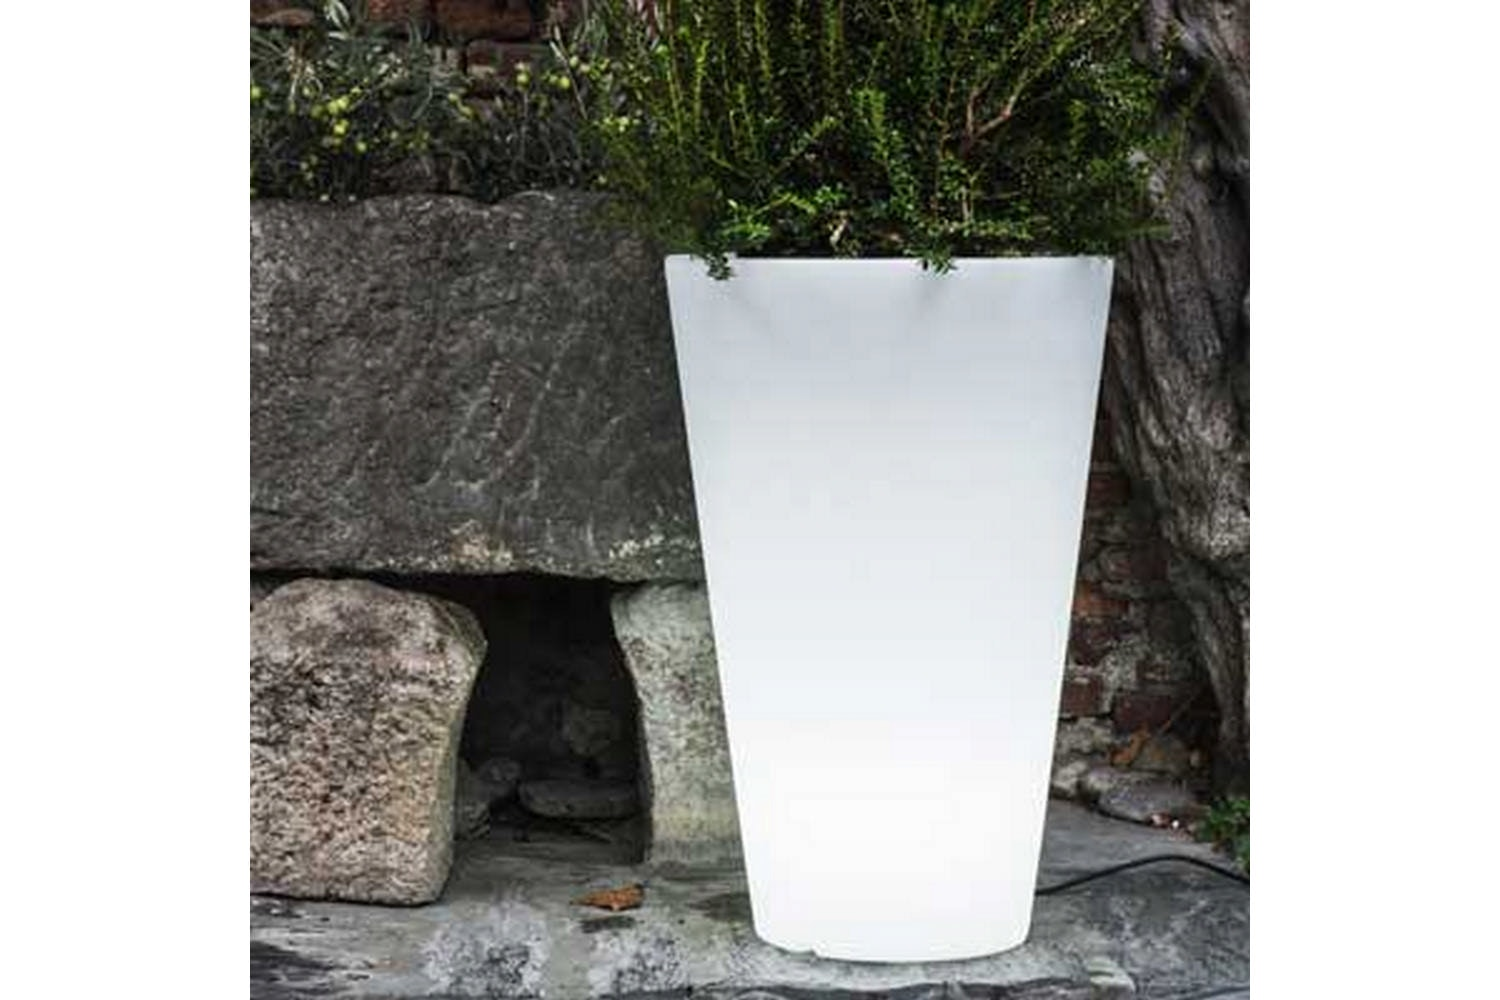 Liscio Siena Pot with Light by Paolo Rizzatto for Serralunga